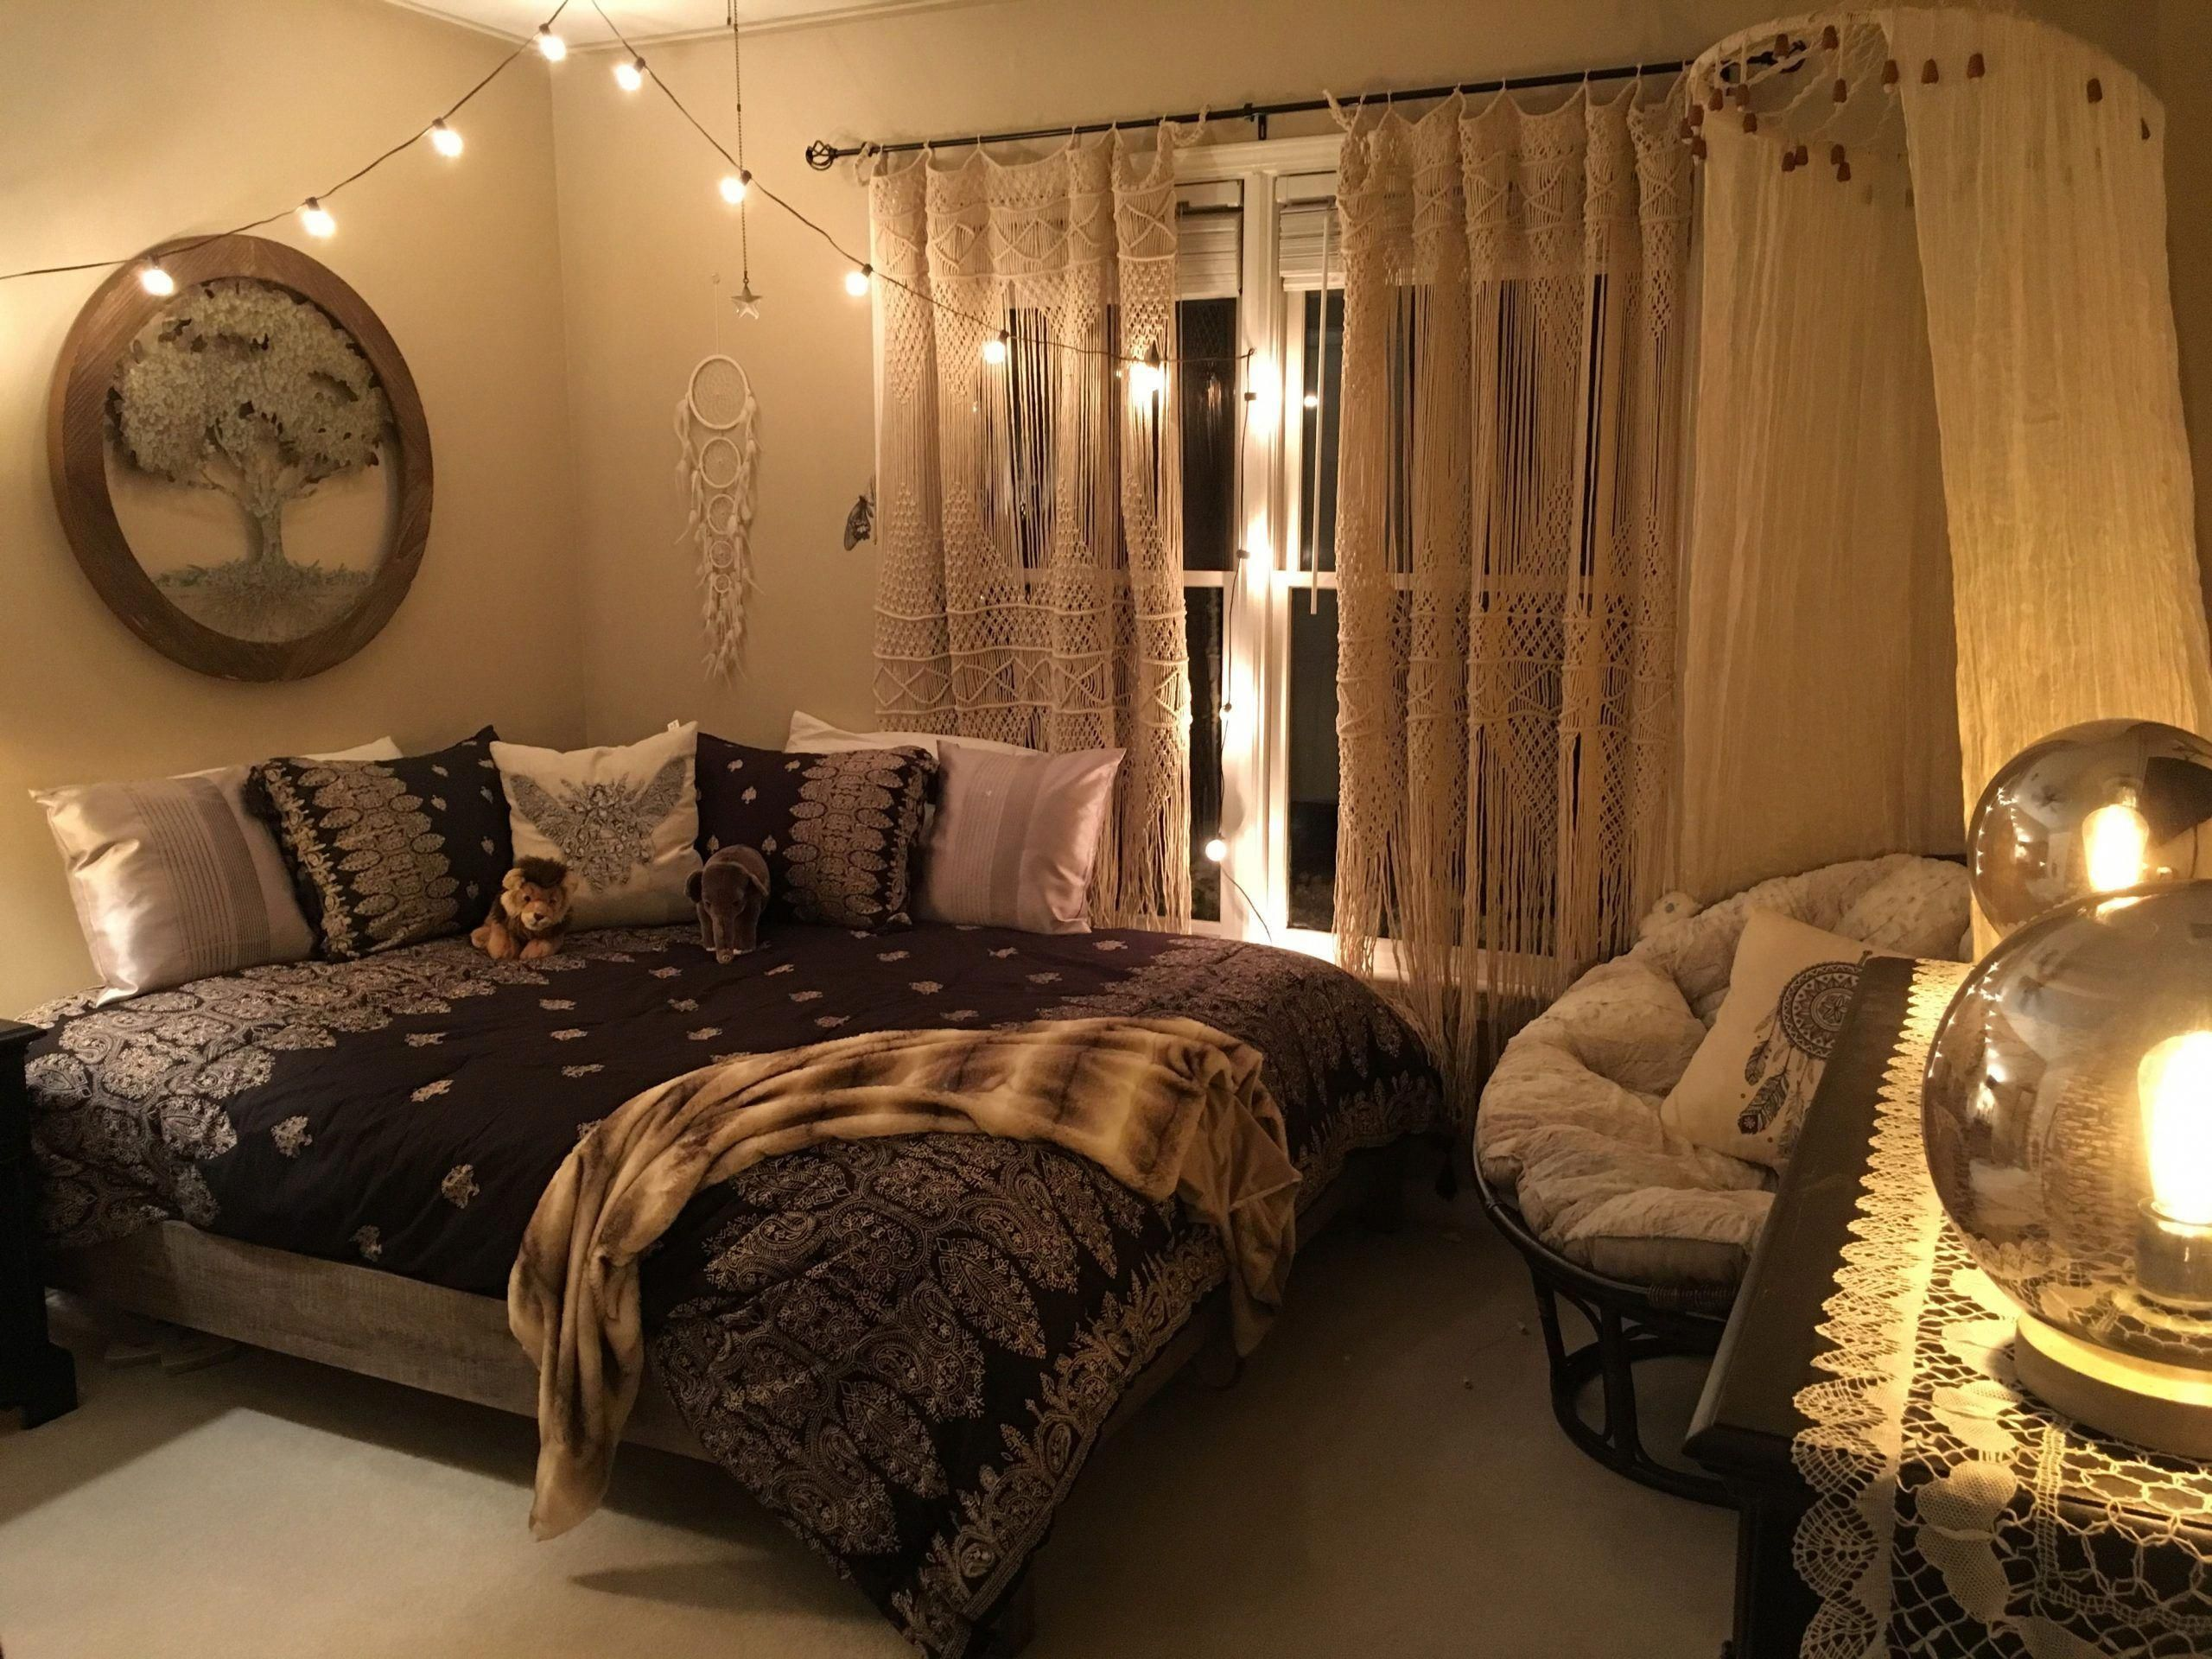 bohemian bedroom urban outfitters hippie warm cozybedroom